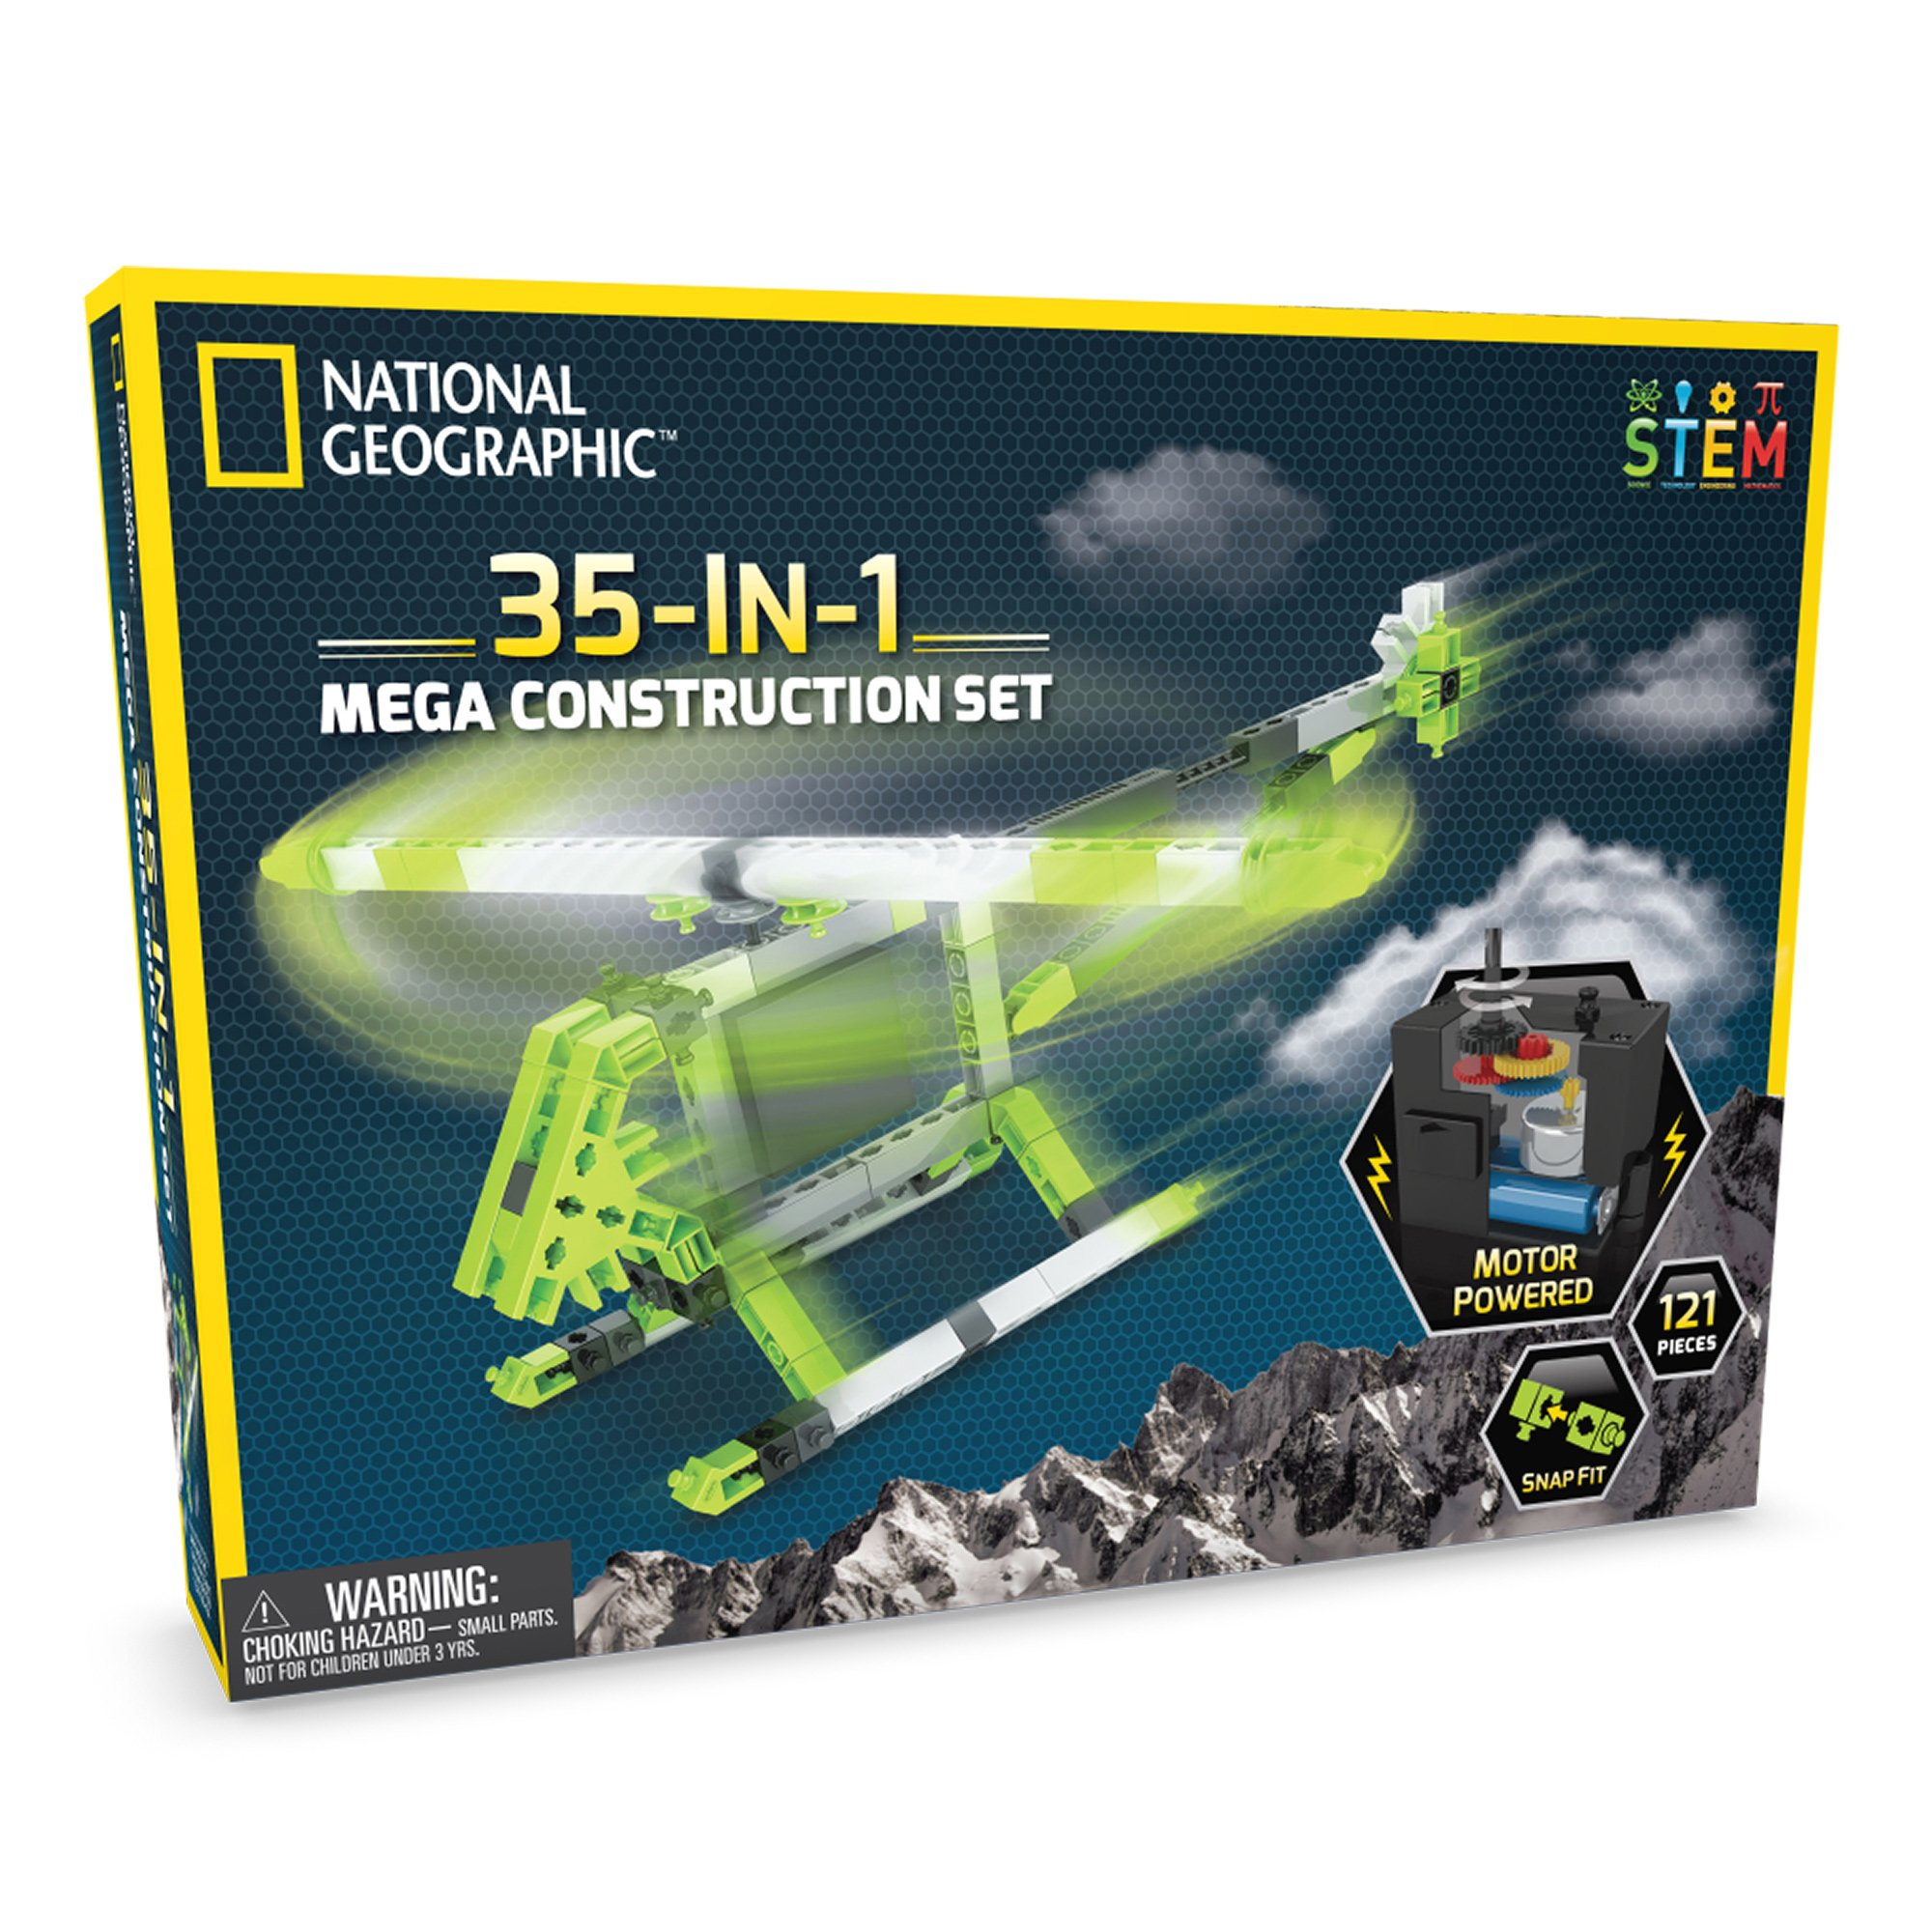 NATIONAL GEOGRAPHIC Mega Construction Engineering Set - Build 35 Unique Motorized Models: Helicopters, Cars, Animals and More - STEM Learning by NATIONAL GEOGRAPHIC